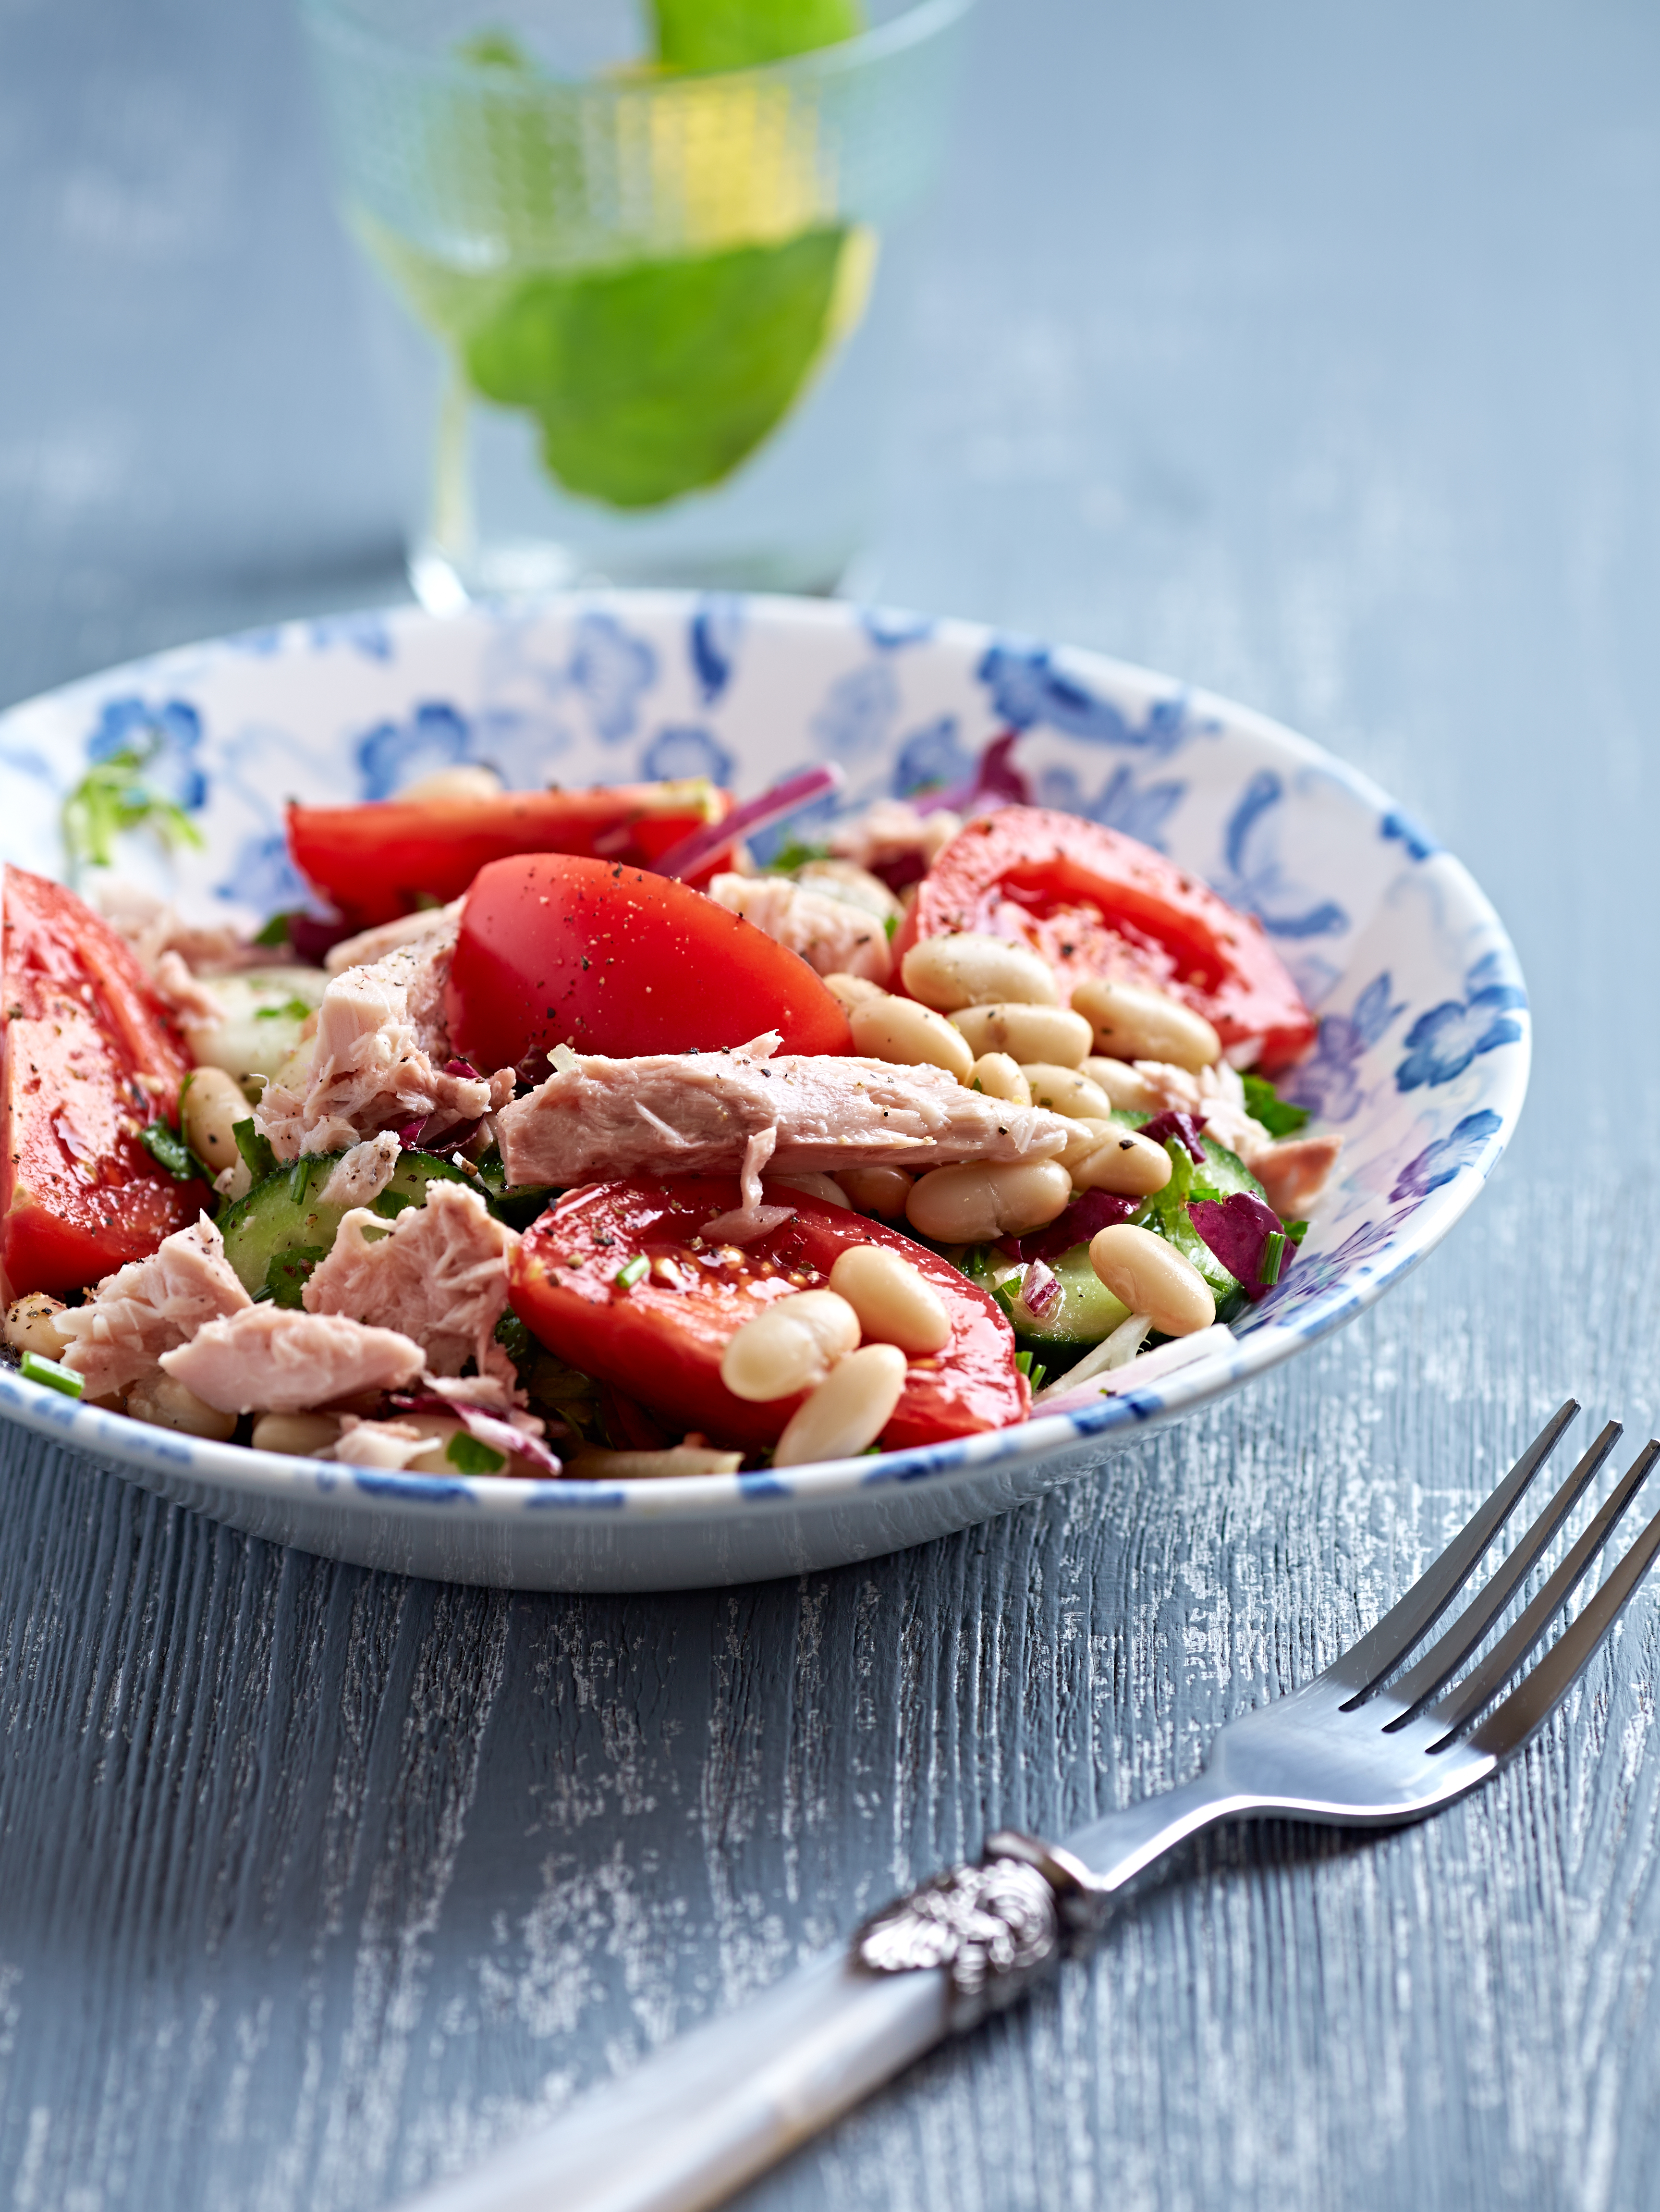 Rustic Tuna Salad with White Beans